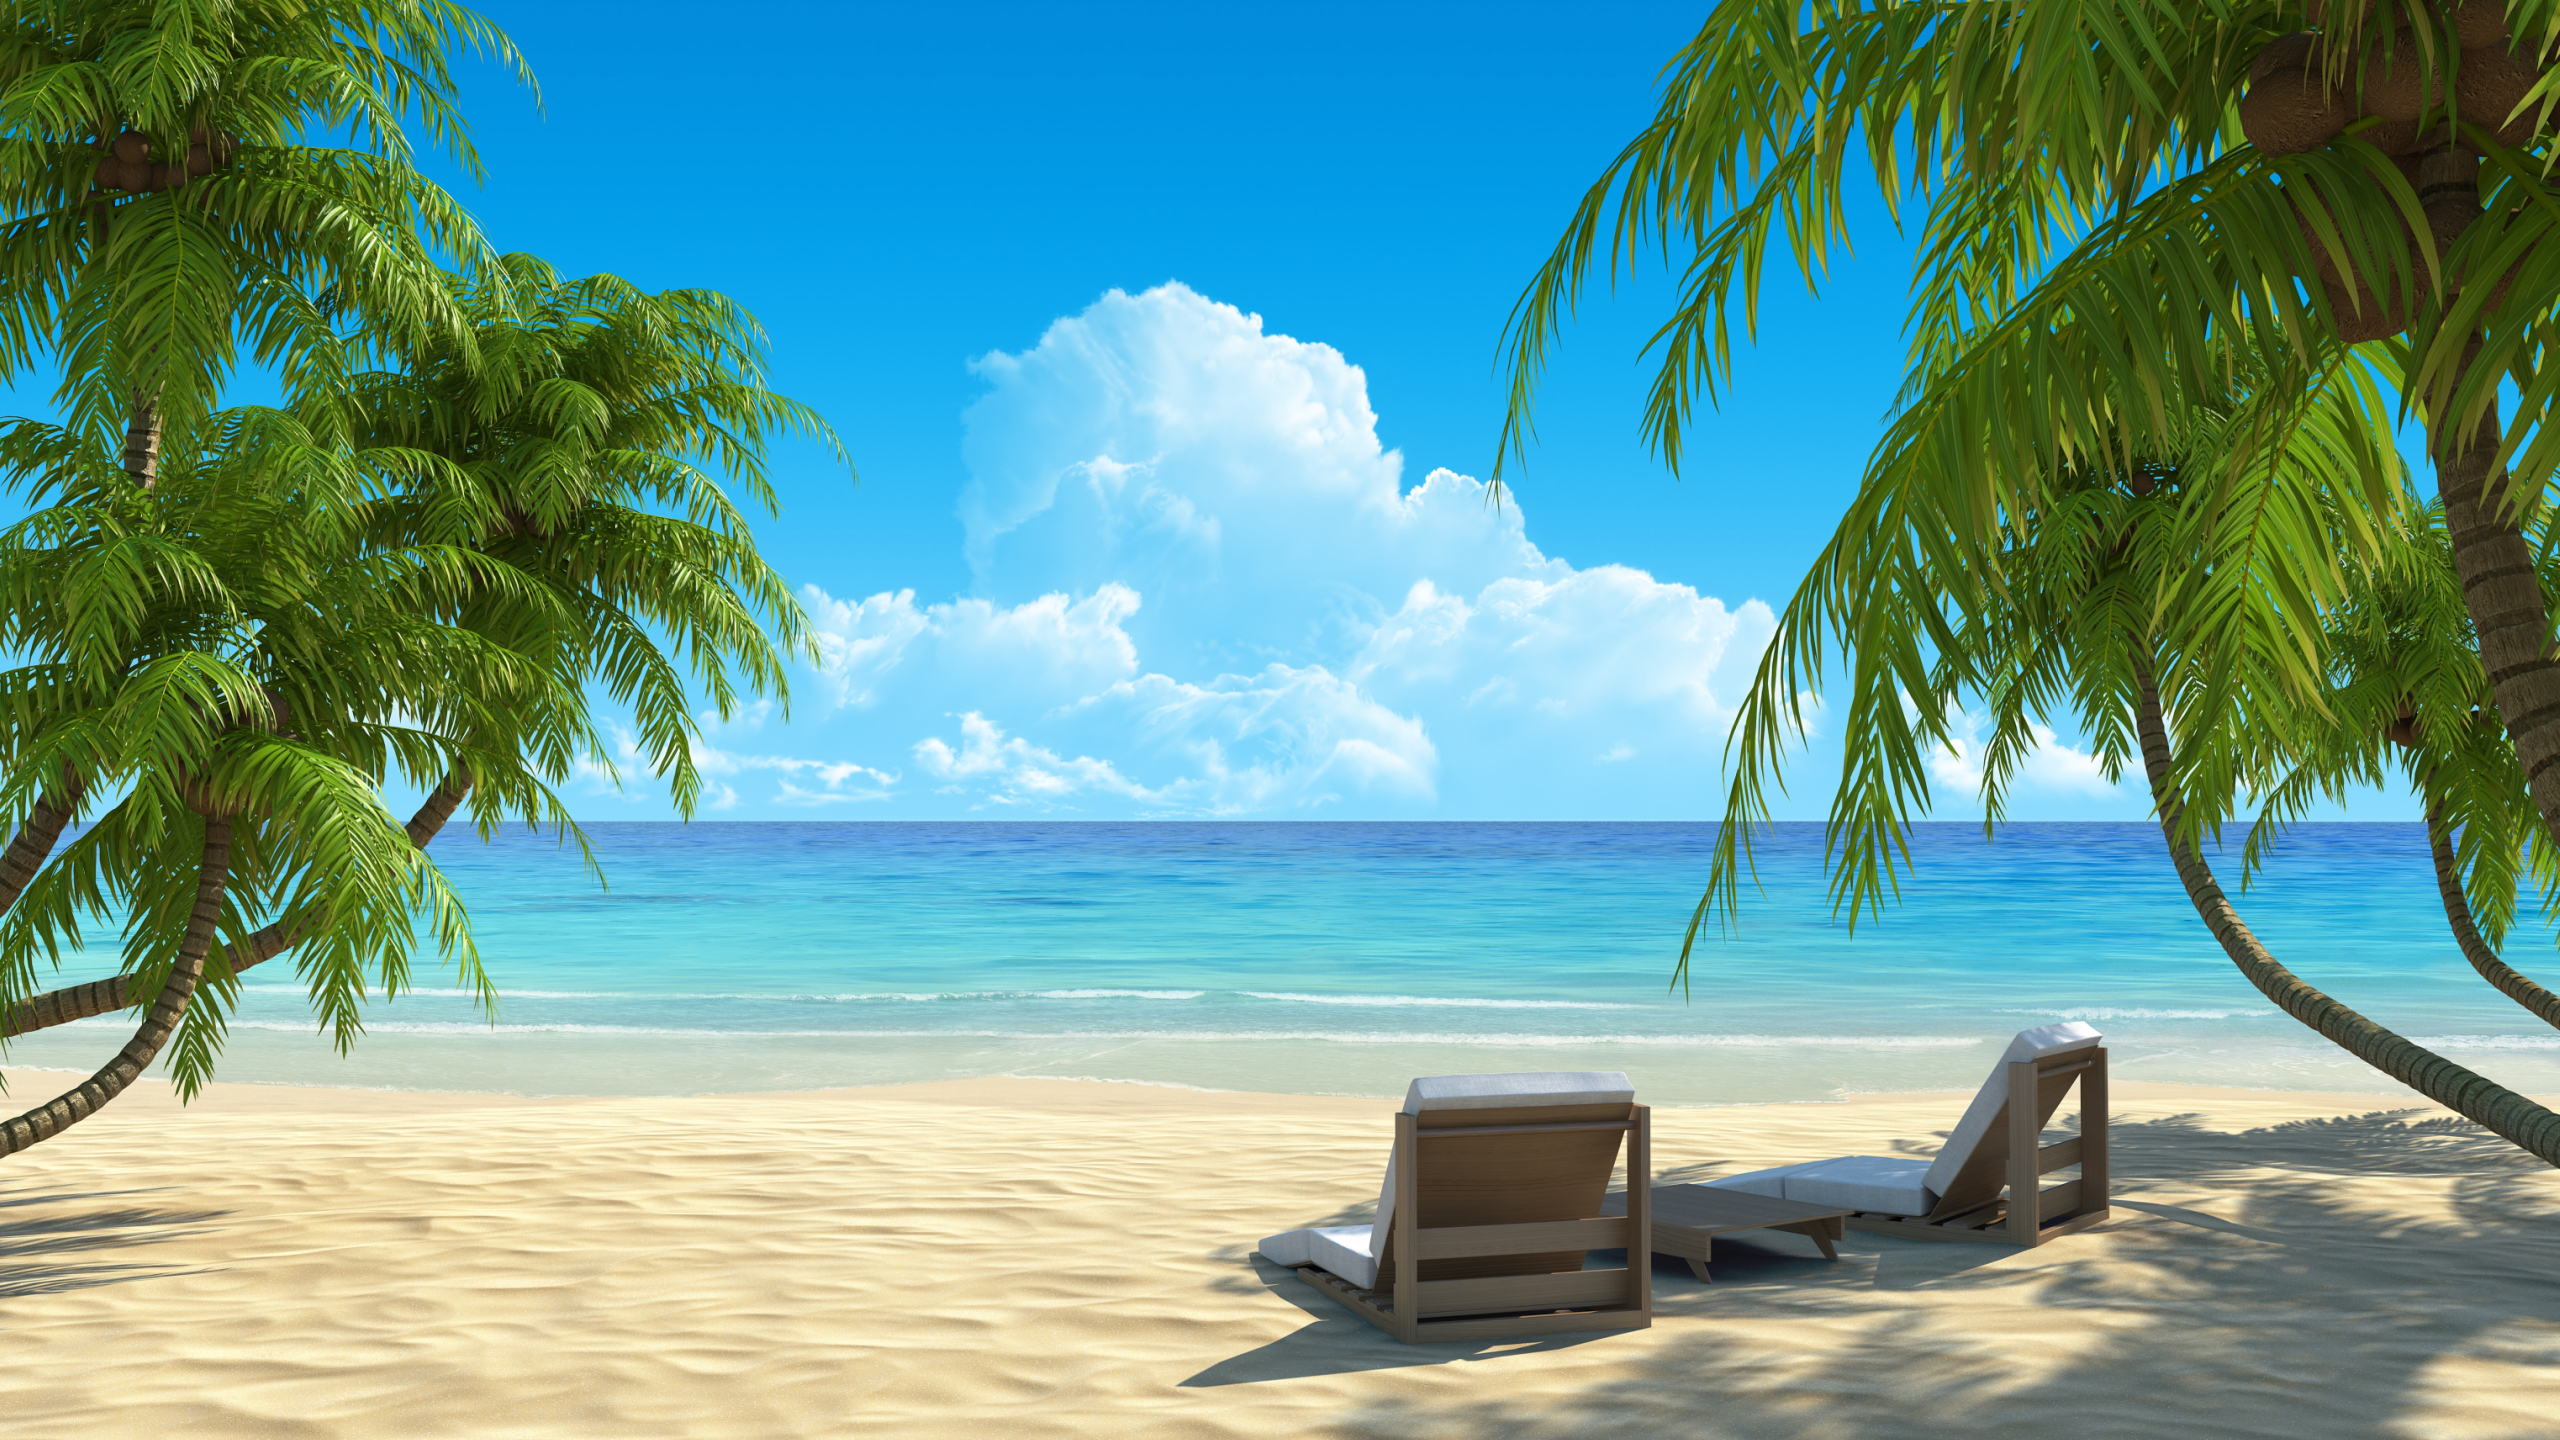 Paradise HD Wallpaper